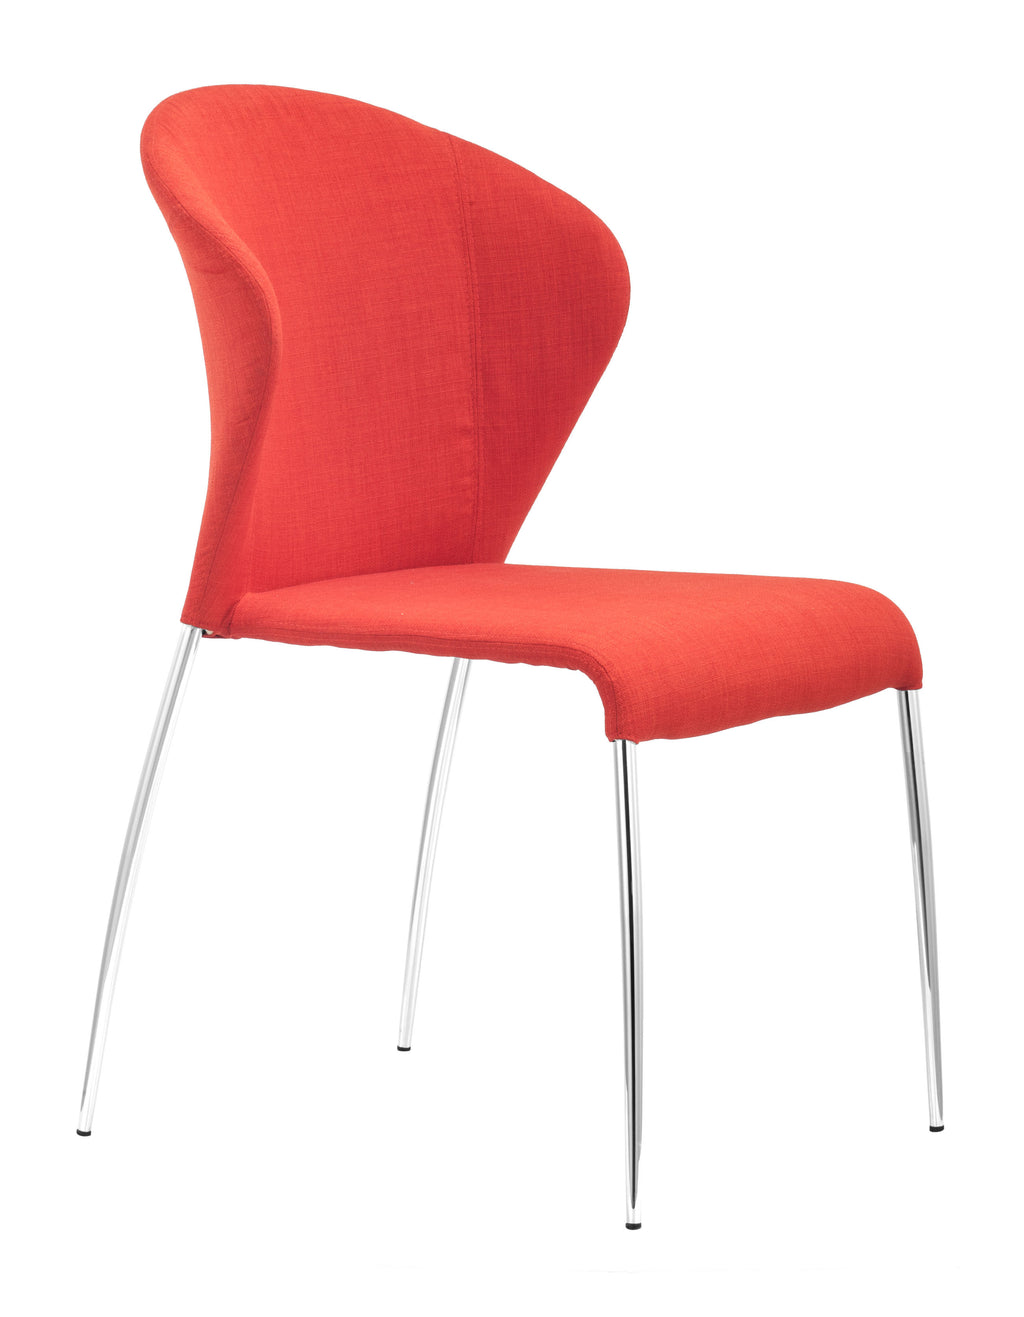 Oulu Dining Chair (Tangerine)